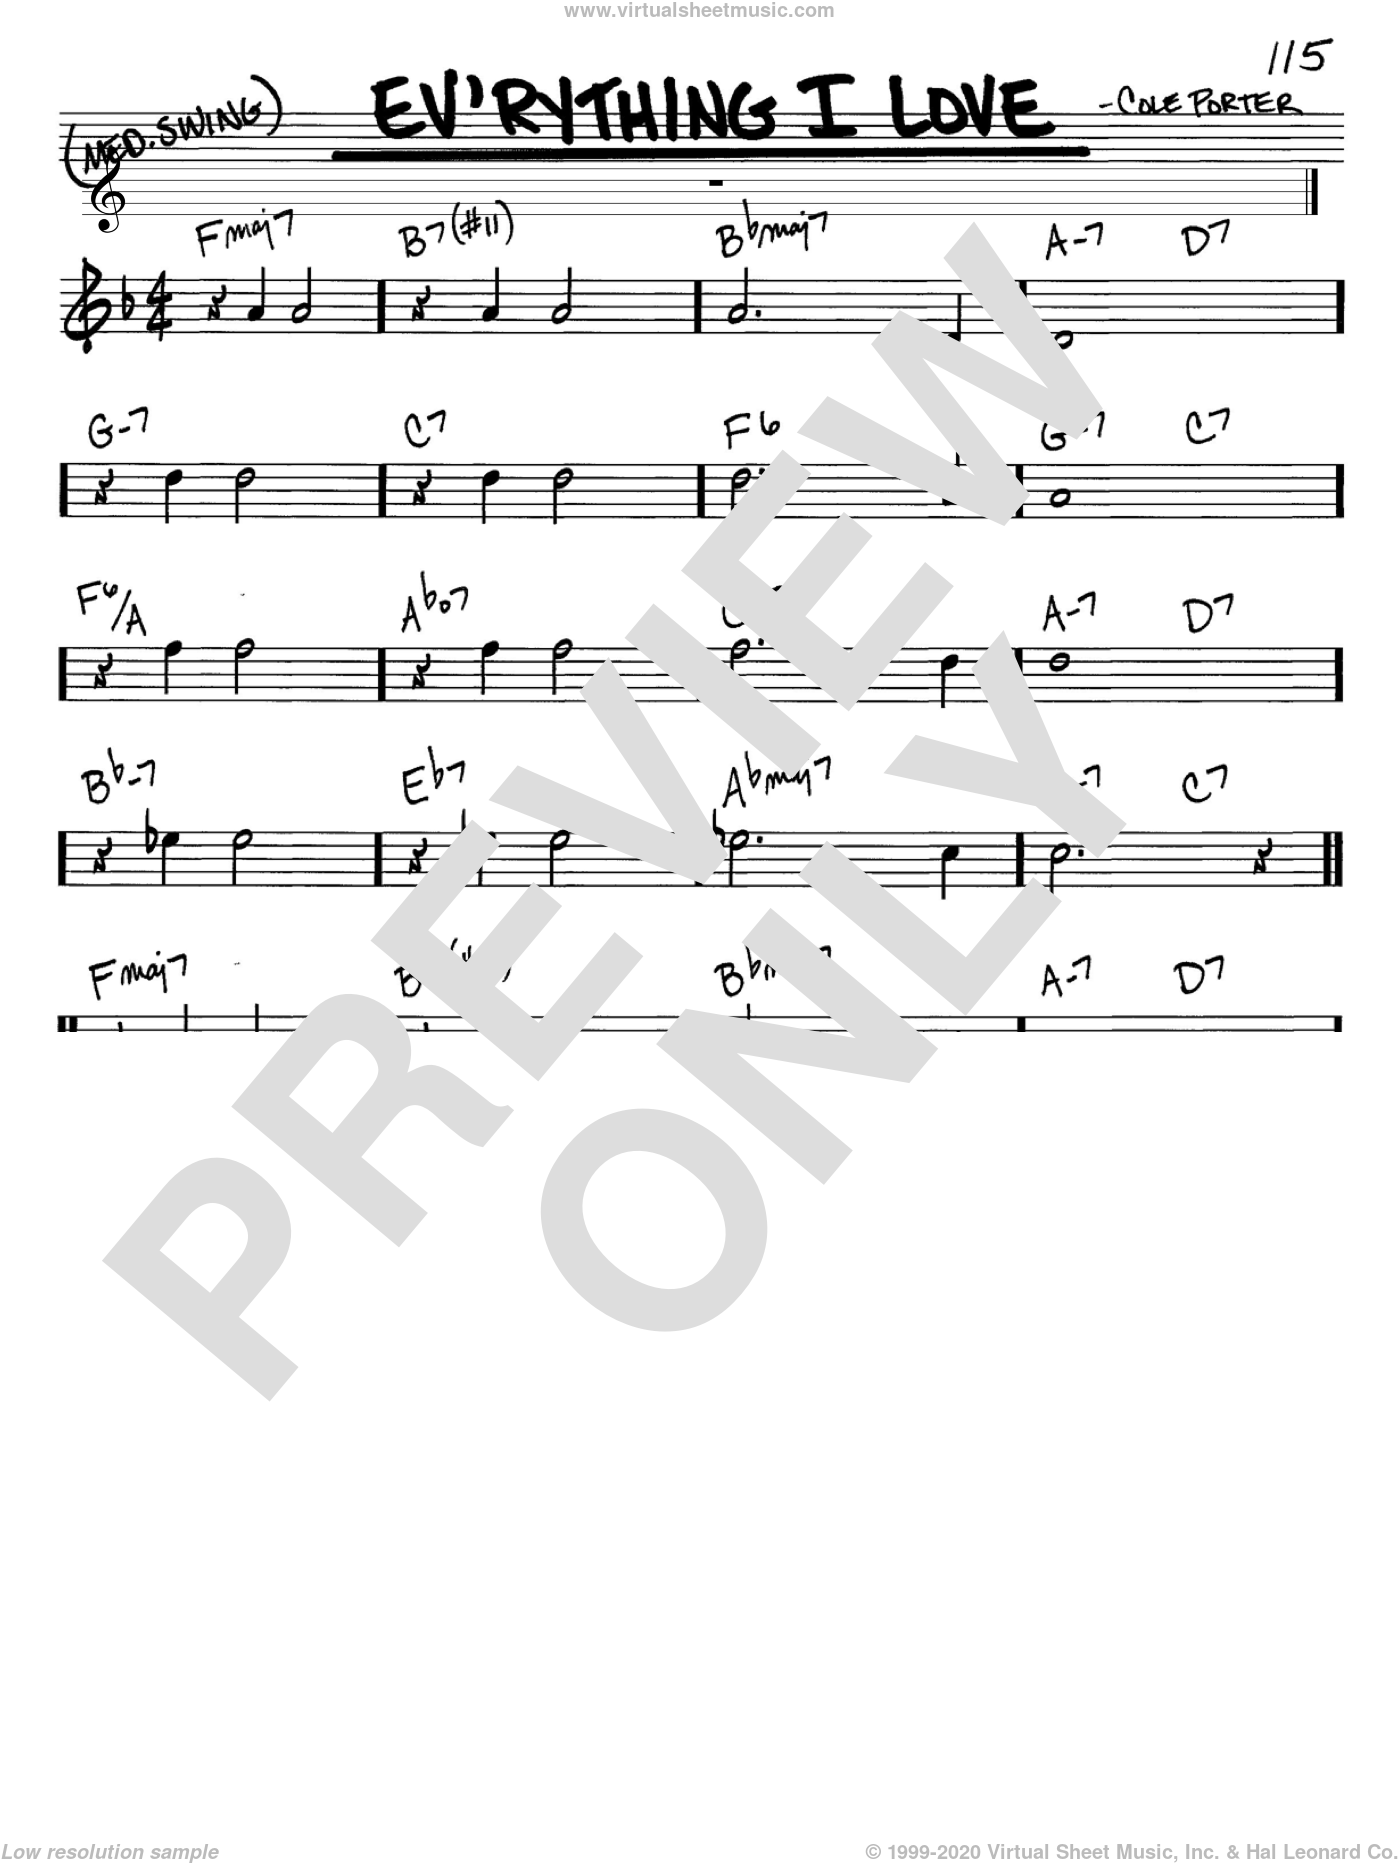 Ev'rything I Love sheet music for voice and other instruments (C) by Cole Porter